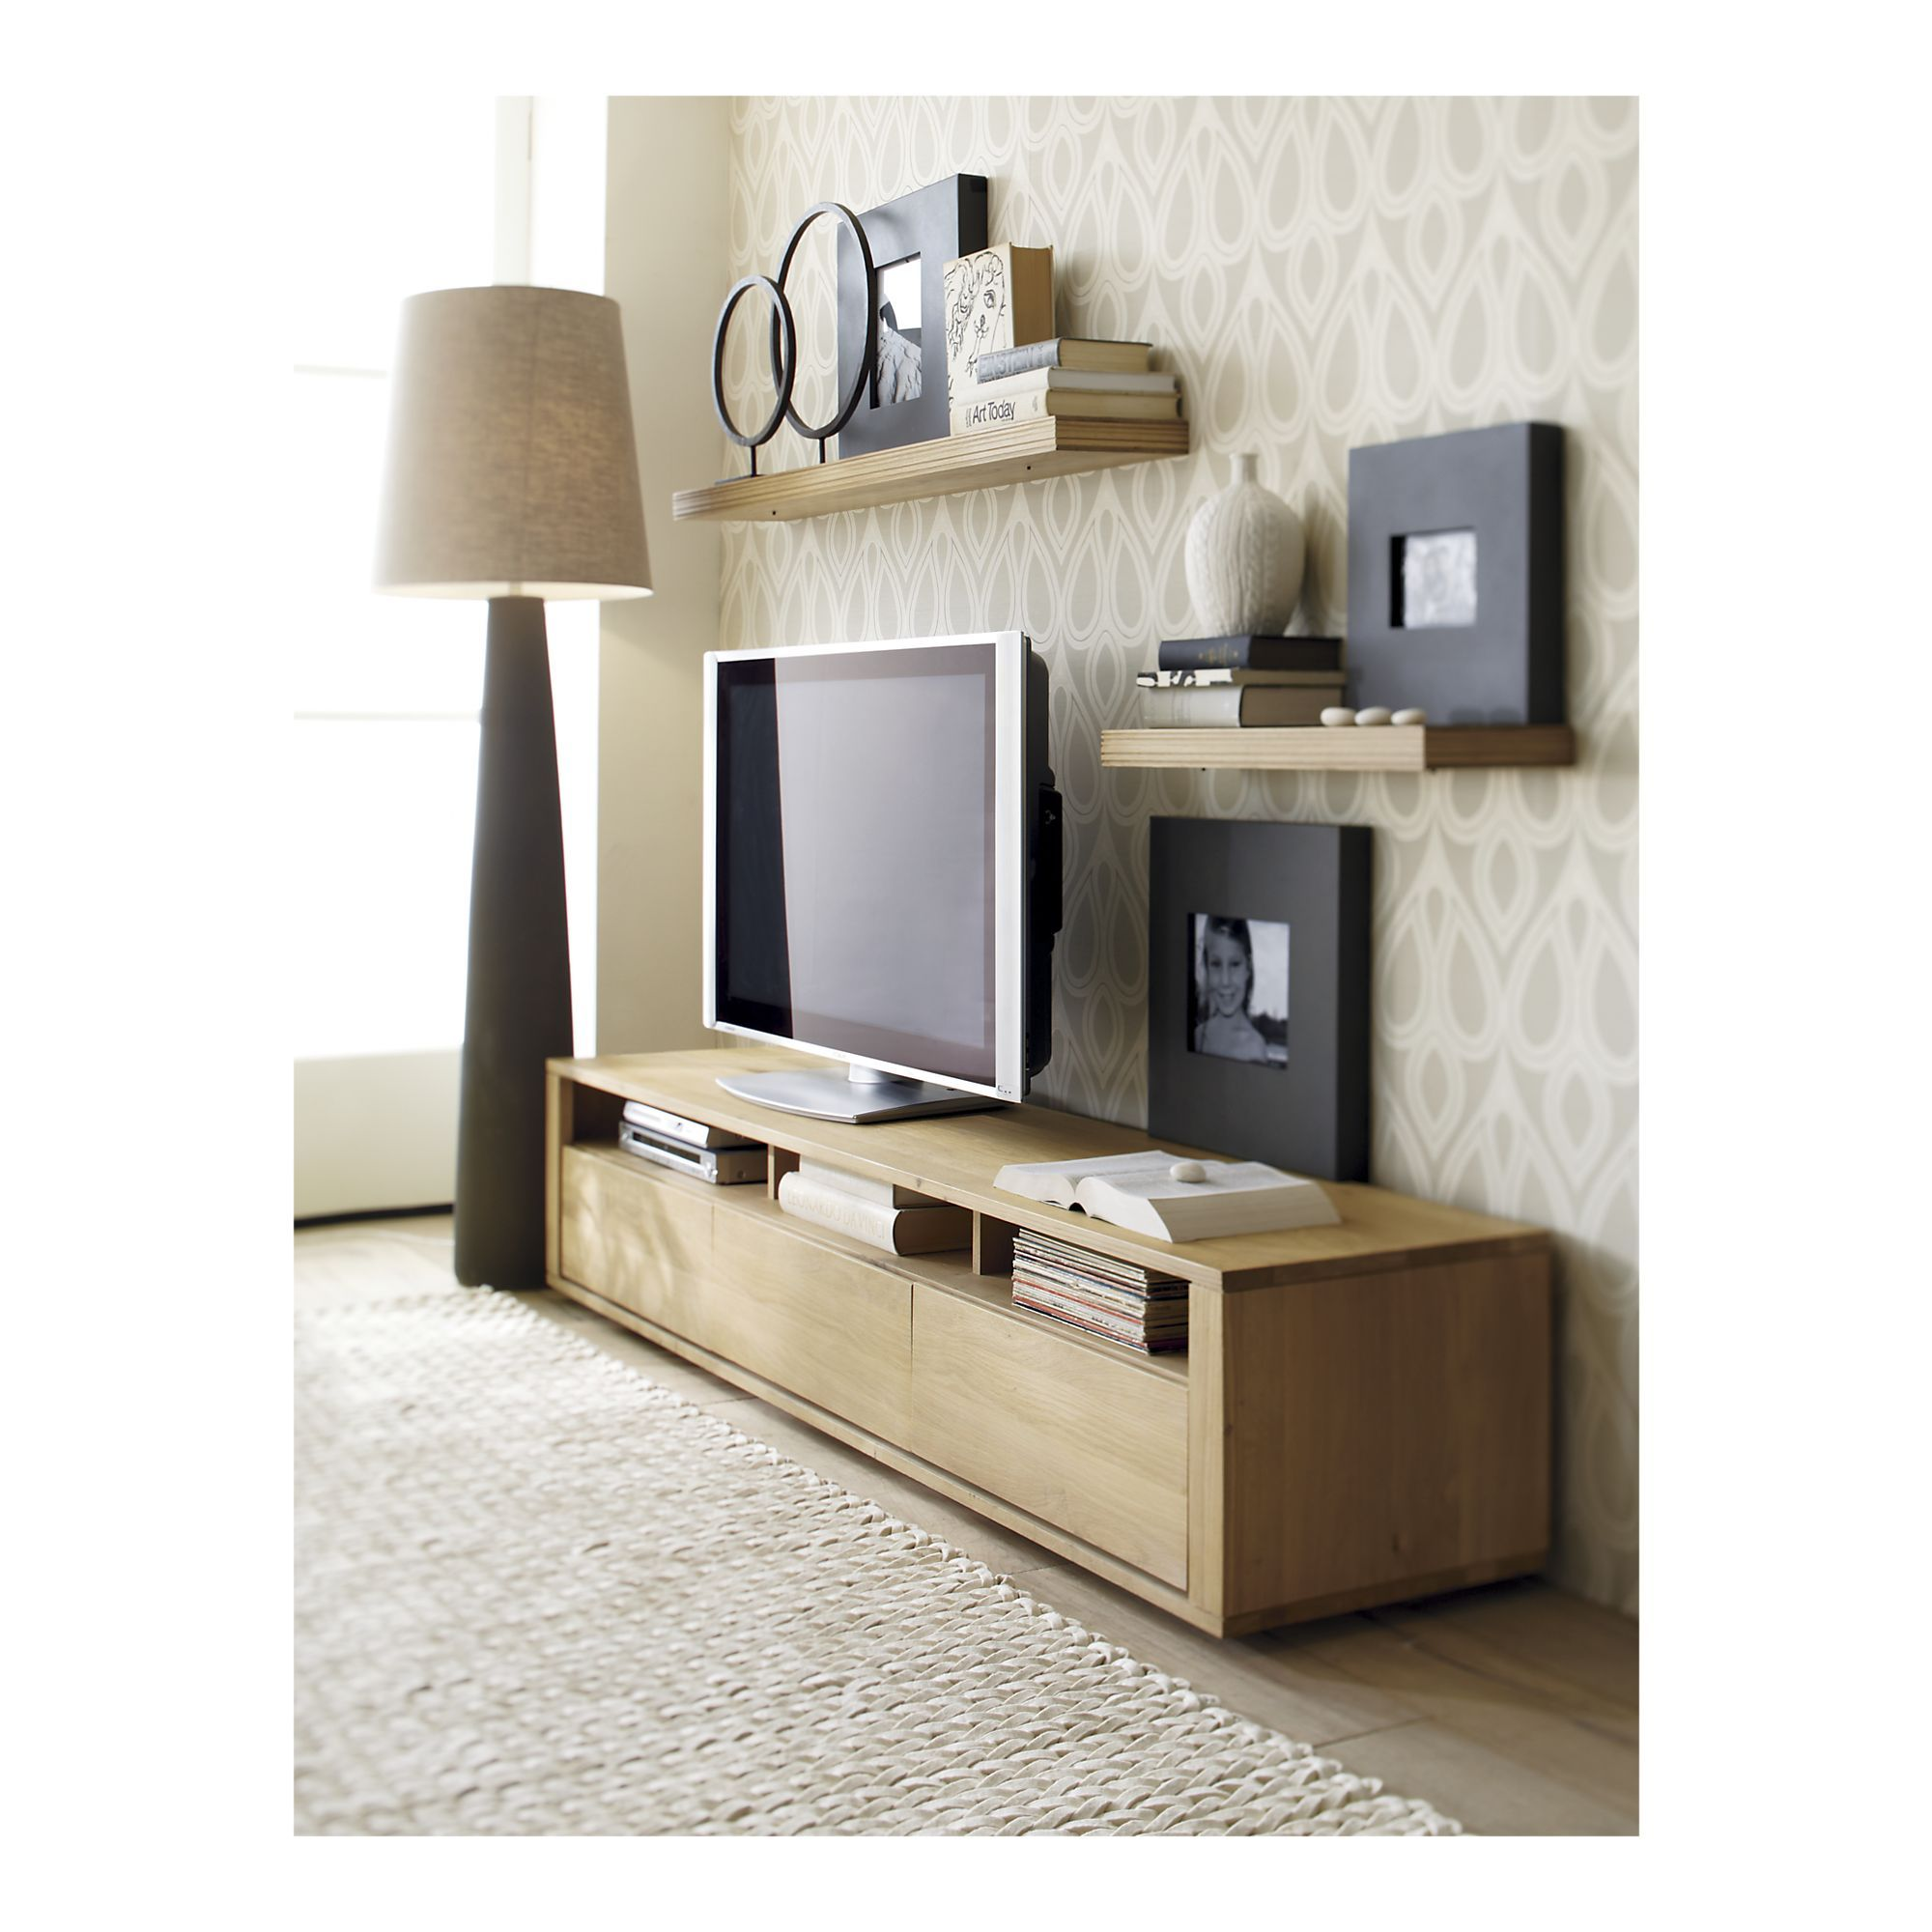 Nice Way To Decorate Around A Flat Screen Tv This Could Be A  # Salon Et Tele Plat